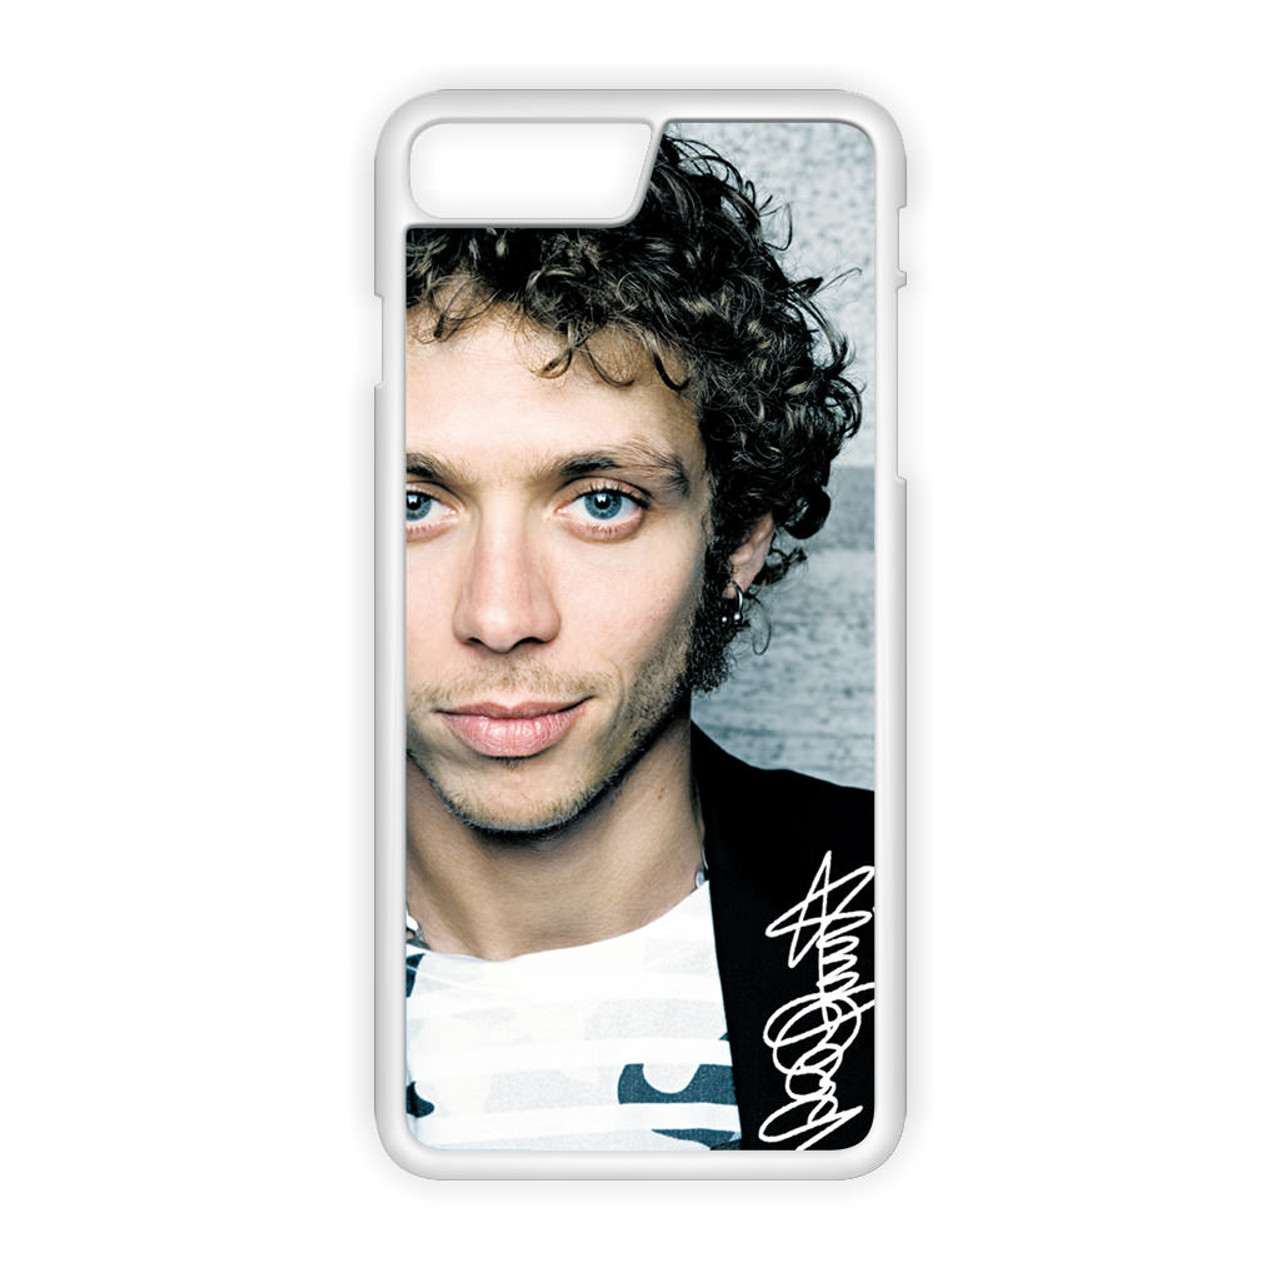 Valentino Rossi Young iPhone 7 Plus Case